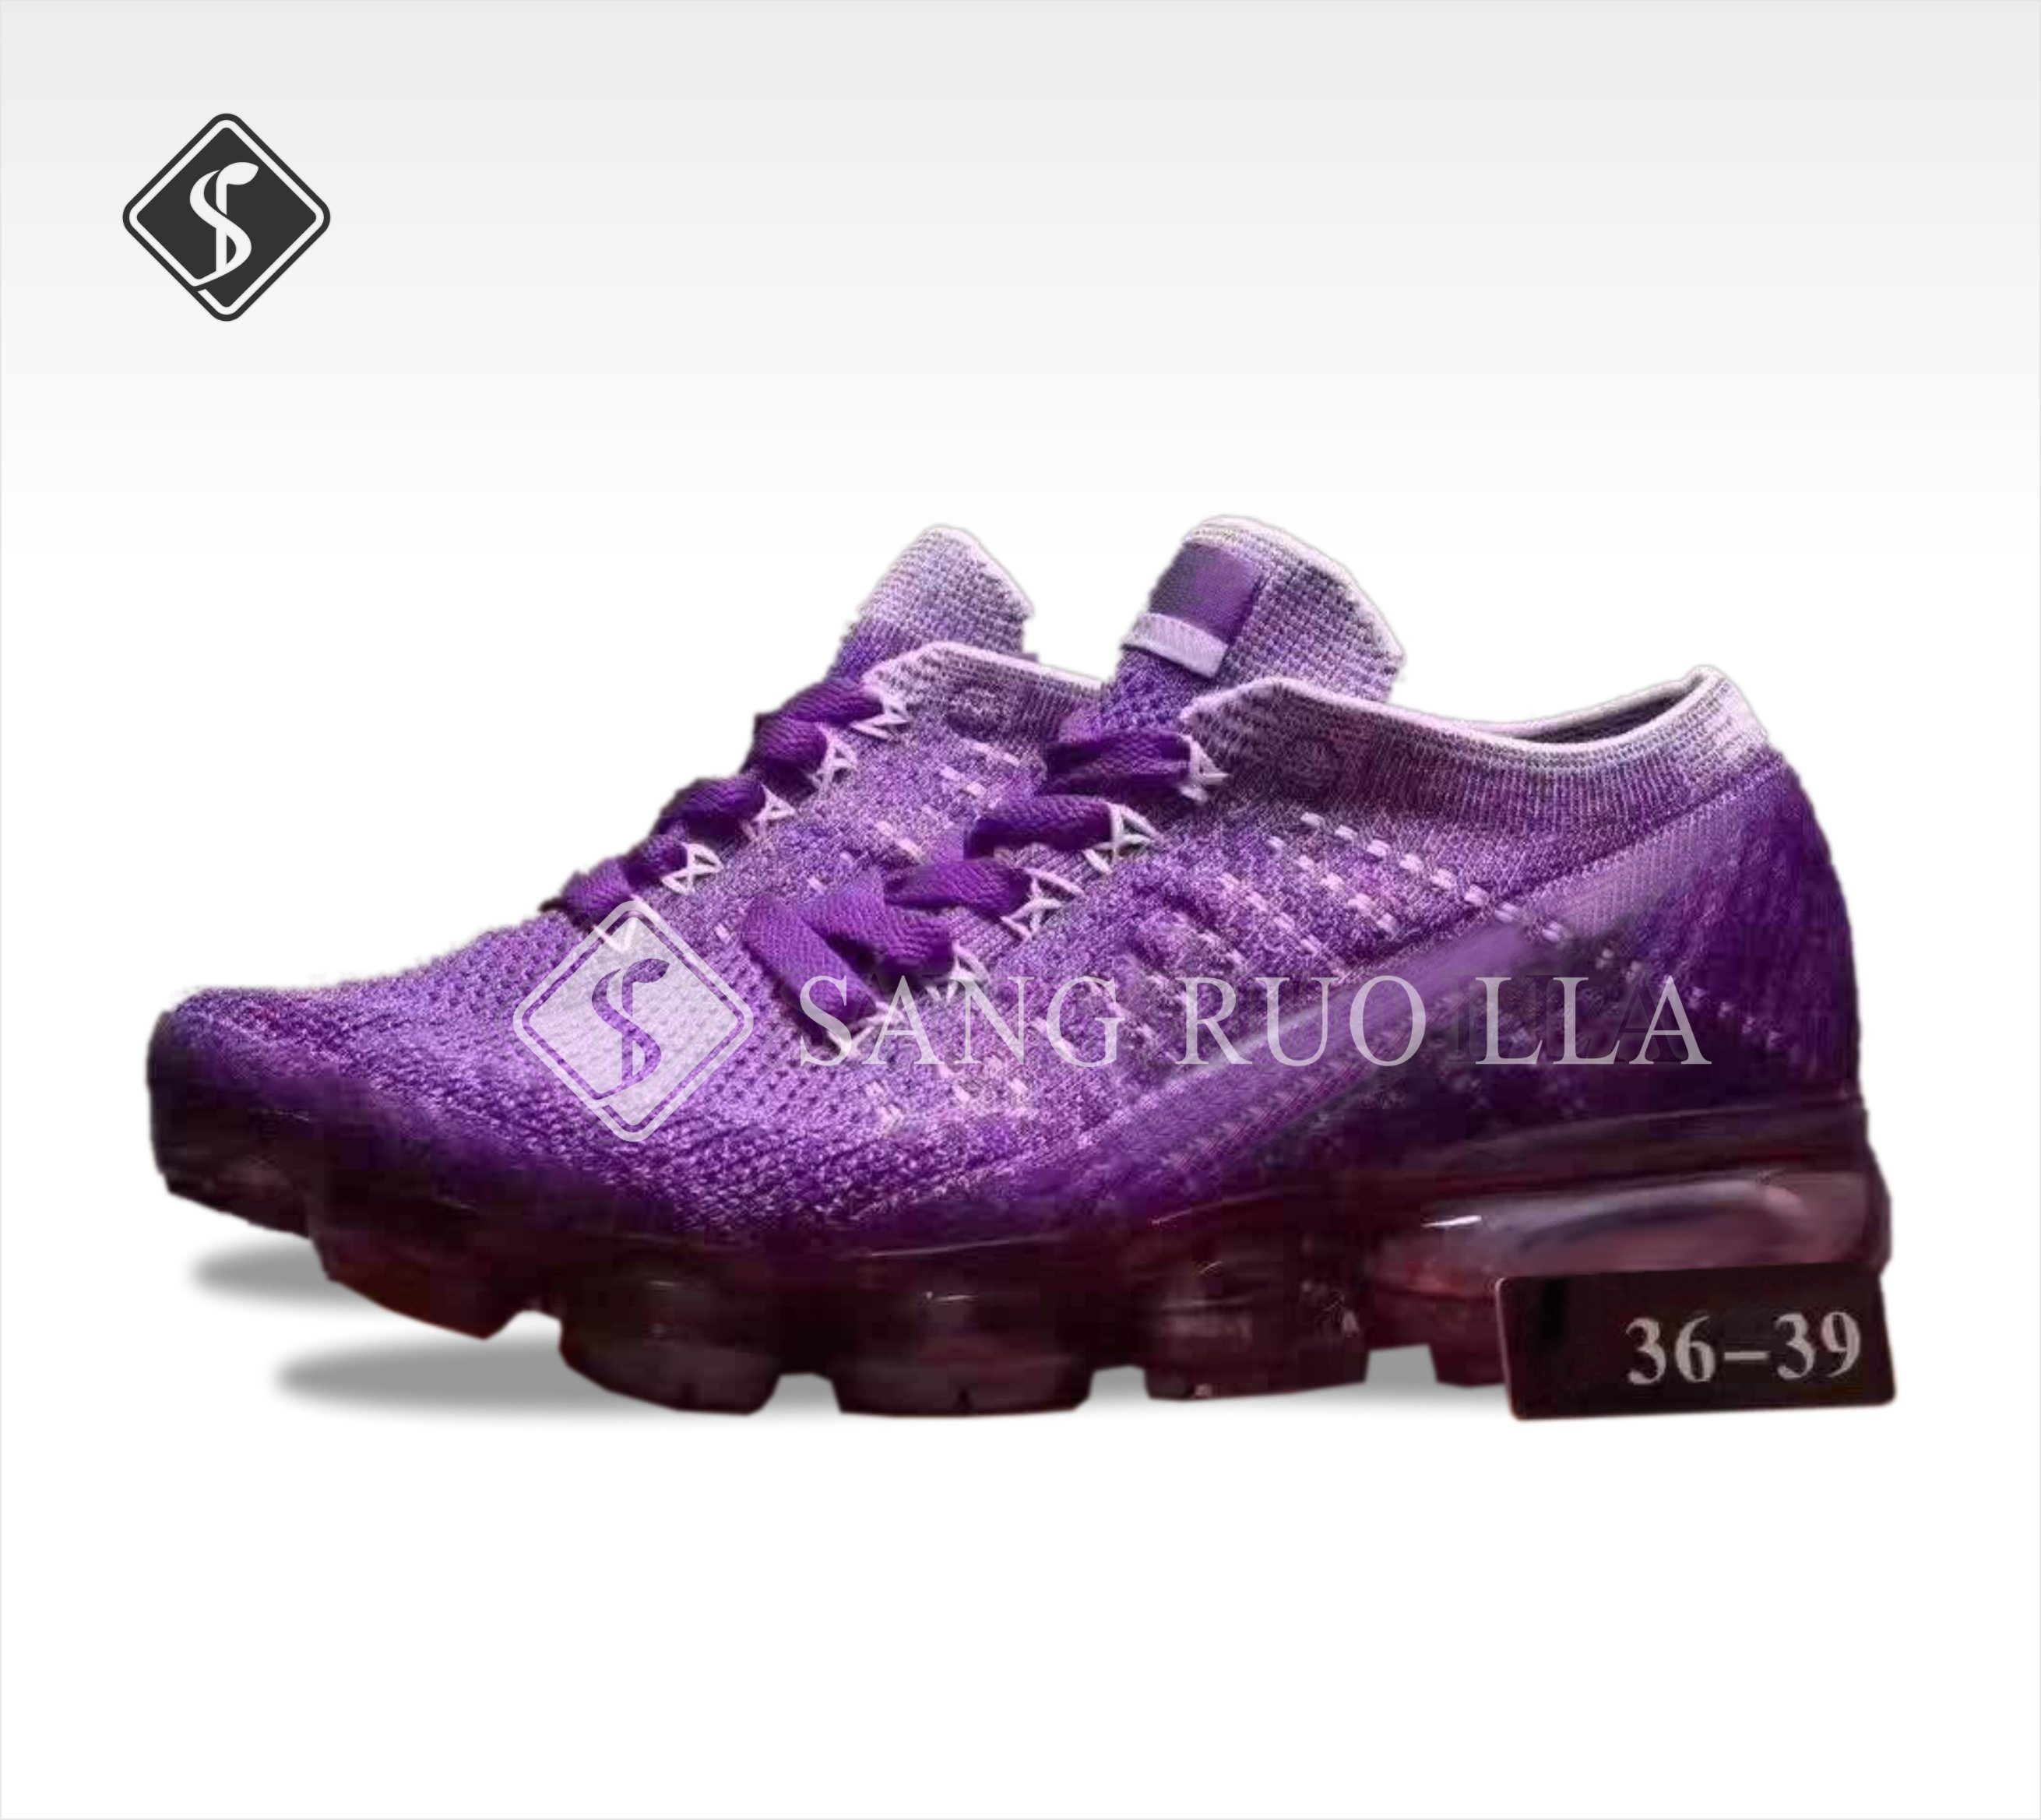 Fly knitting Shoes, Sports Shoes, Sneaker Shoes, Comfortable Shoes, Running Shoes